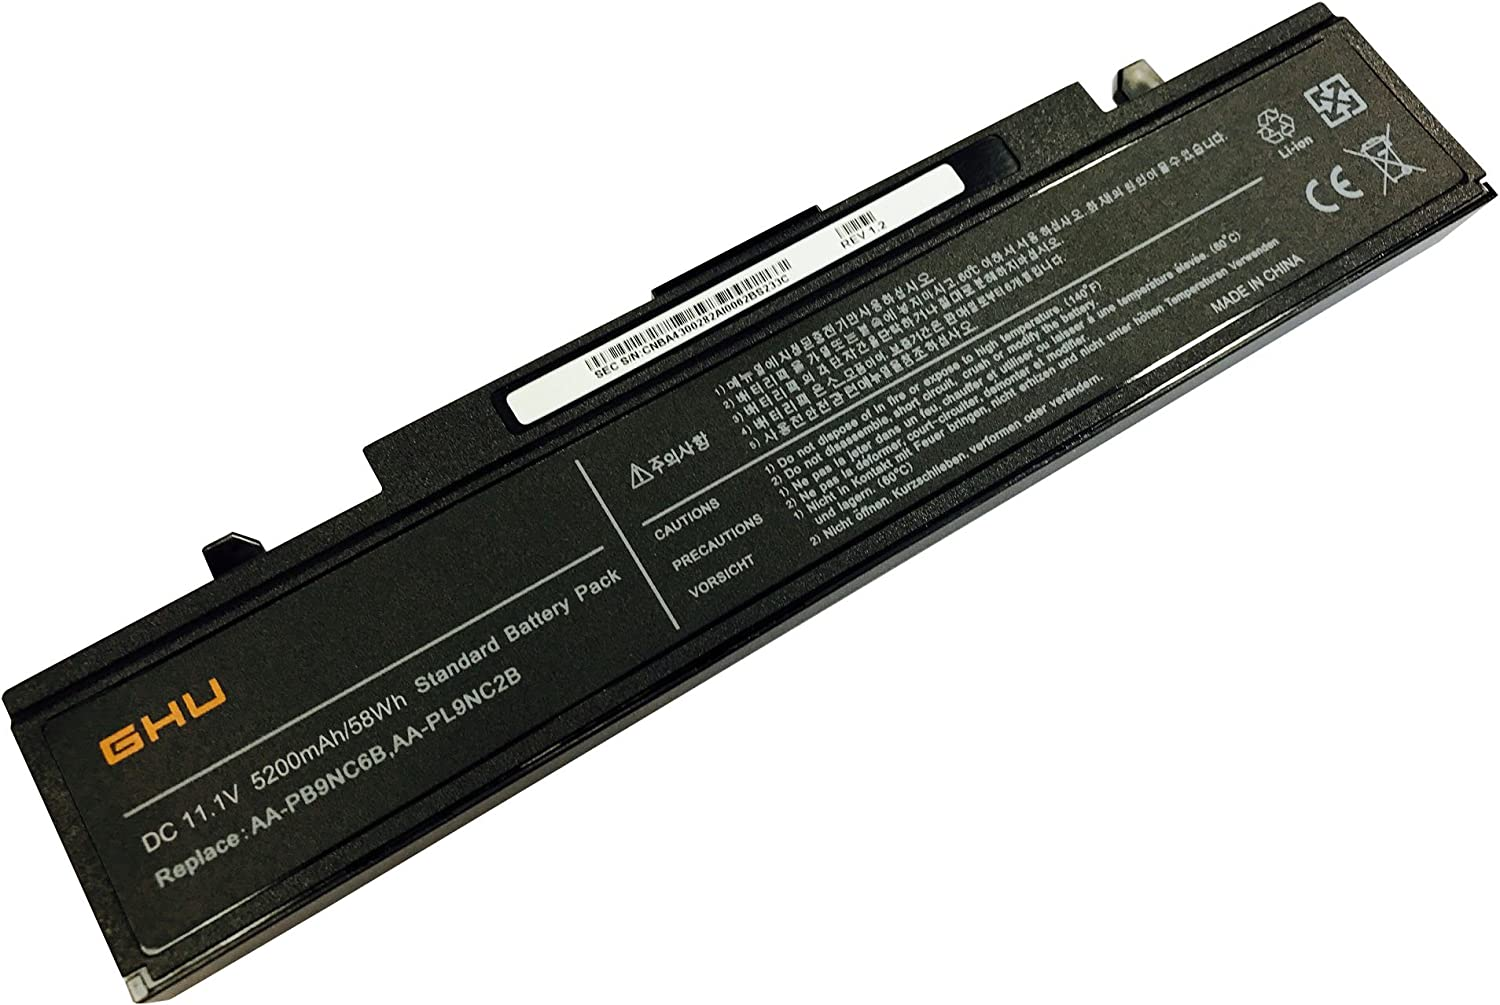 New GHU Battery AA-PB9NC6B 58 Wh for Samsung R429 R465 R465H R466 R520H R522H R530 AA-PB9MC6B AA-PB9NC6W AA-PB9NS6B R720 AA-PB9MC6W AA-PB9NC5B AA-PB9NC6B AA-PB9NC6W/E AA-PB9NS6B PB9NS6B AA-PB9NS6W